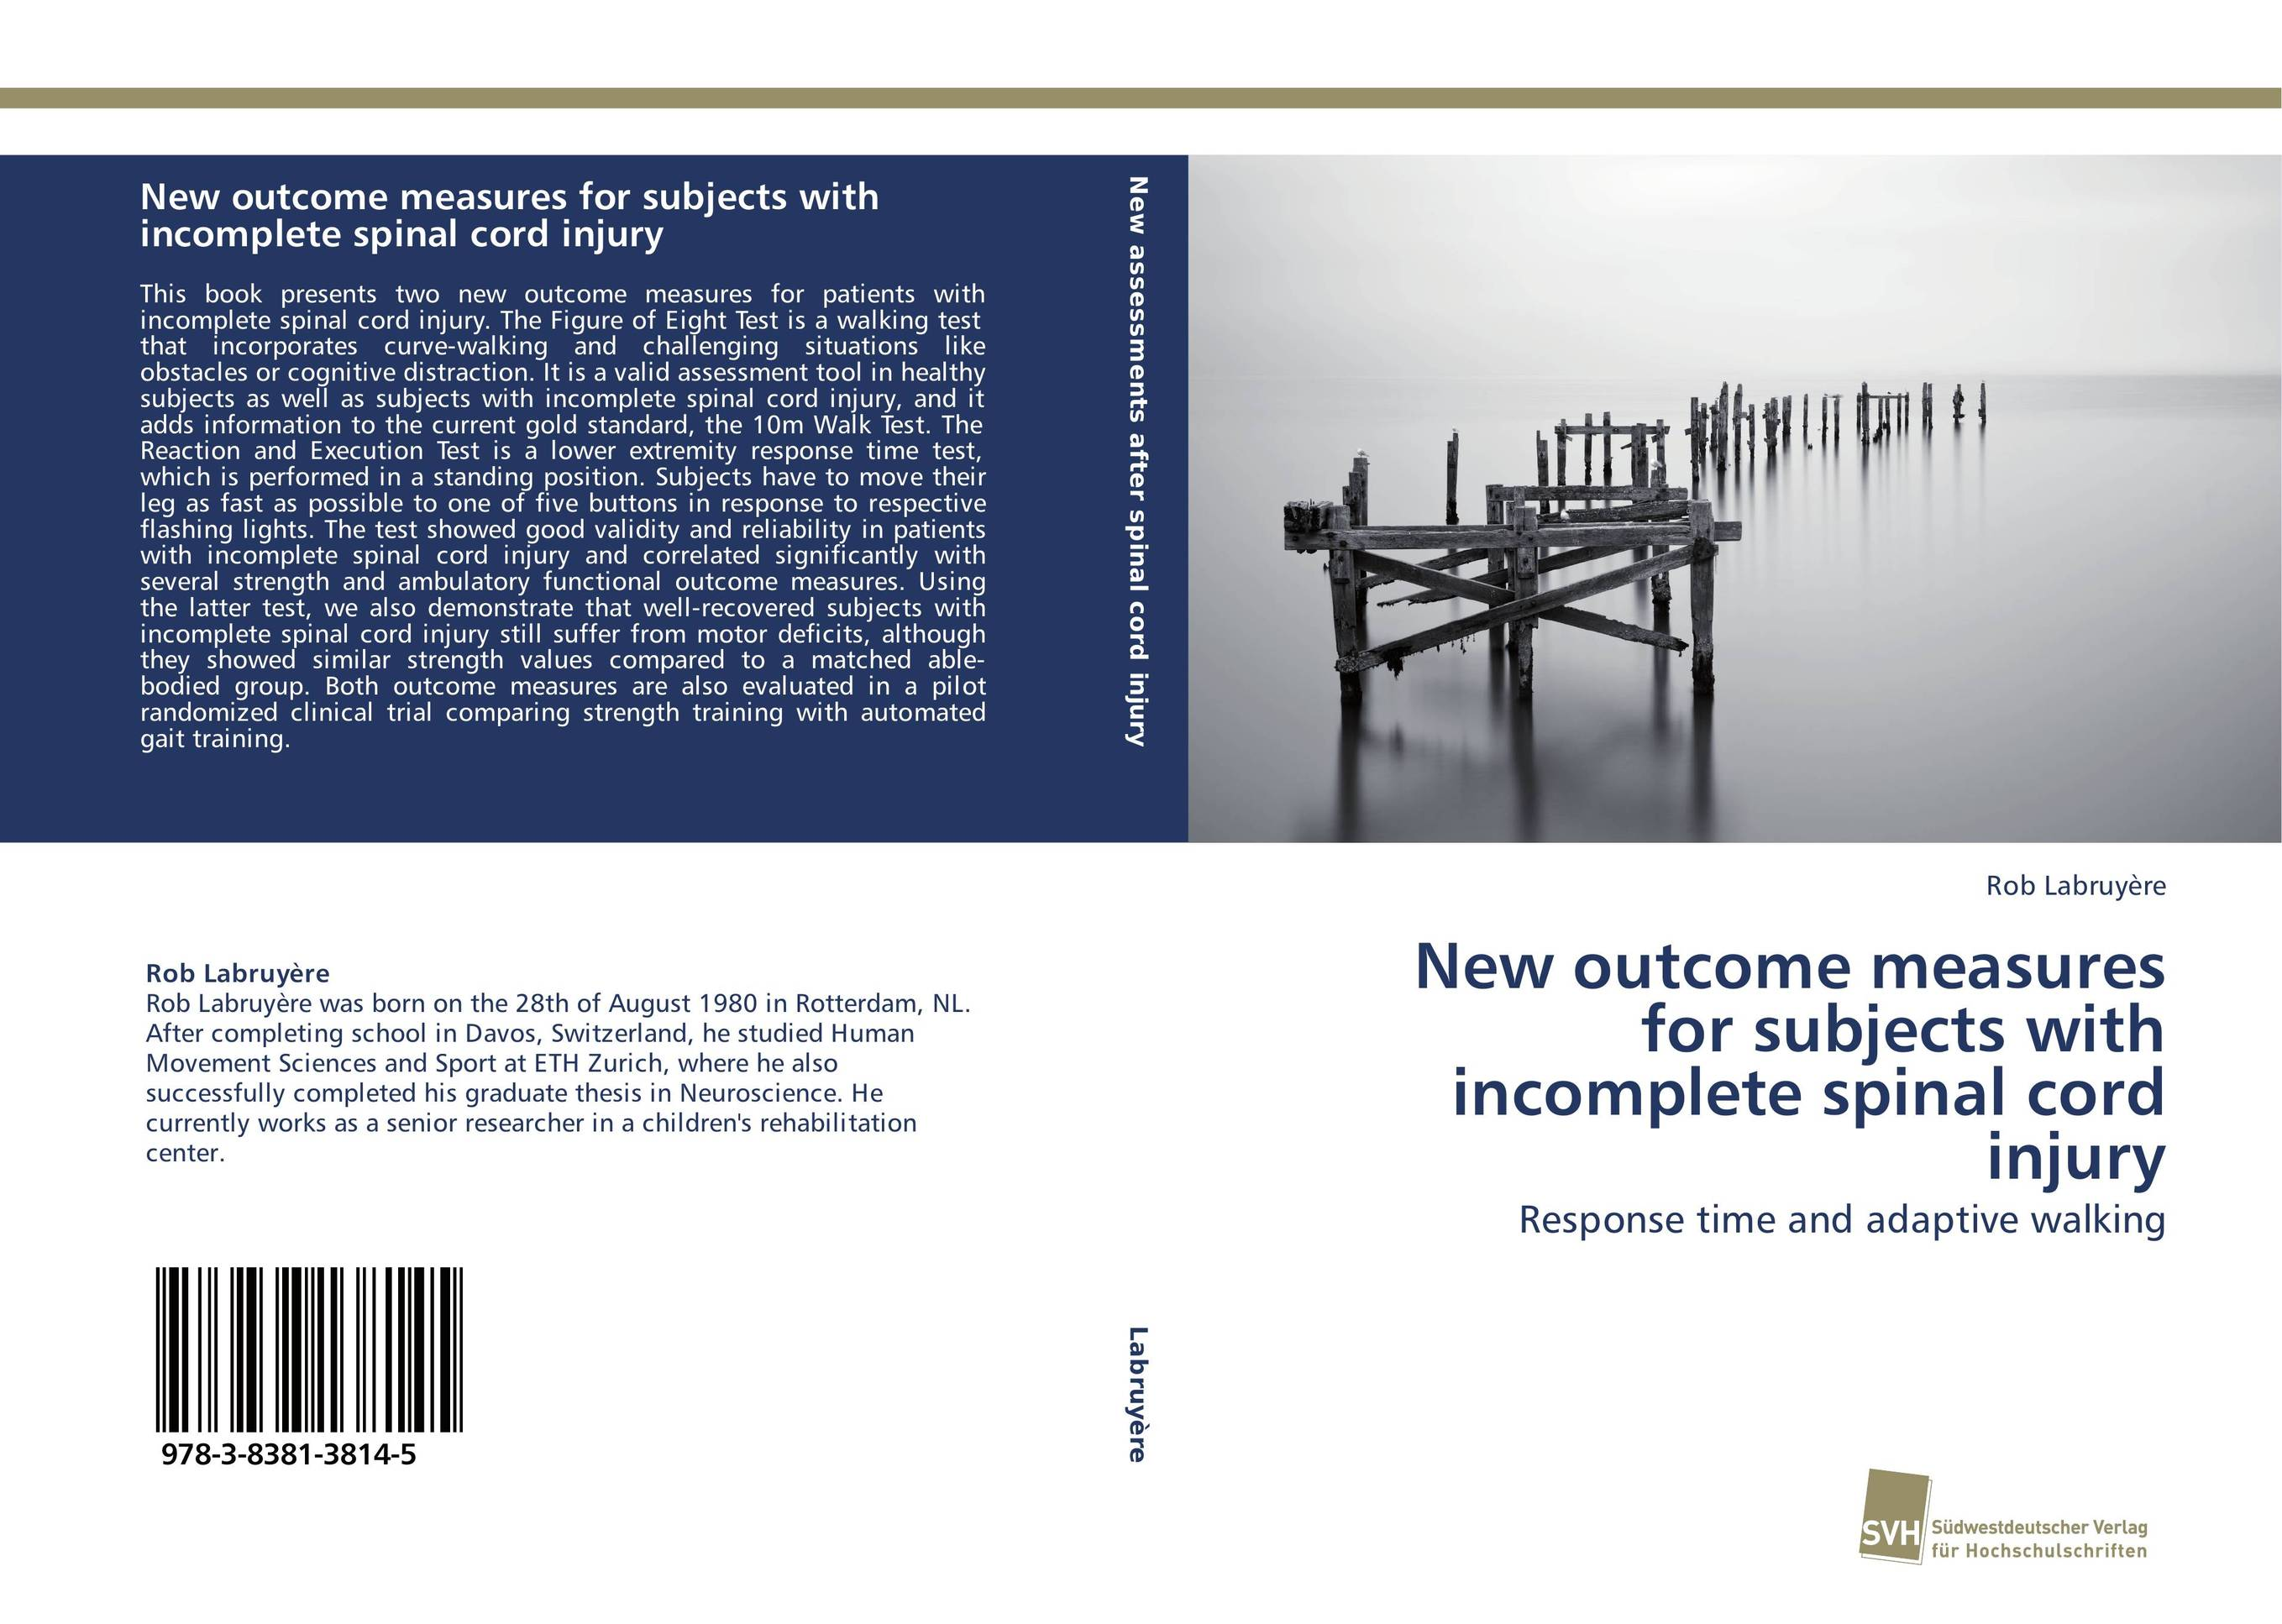 New outcome measures for subjects with incomplete spinal cord injury working wounded advice that adds insight to injury